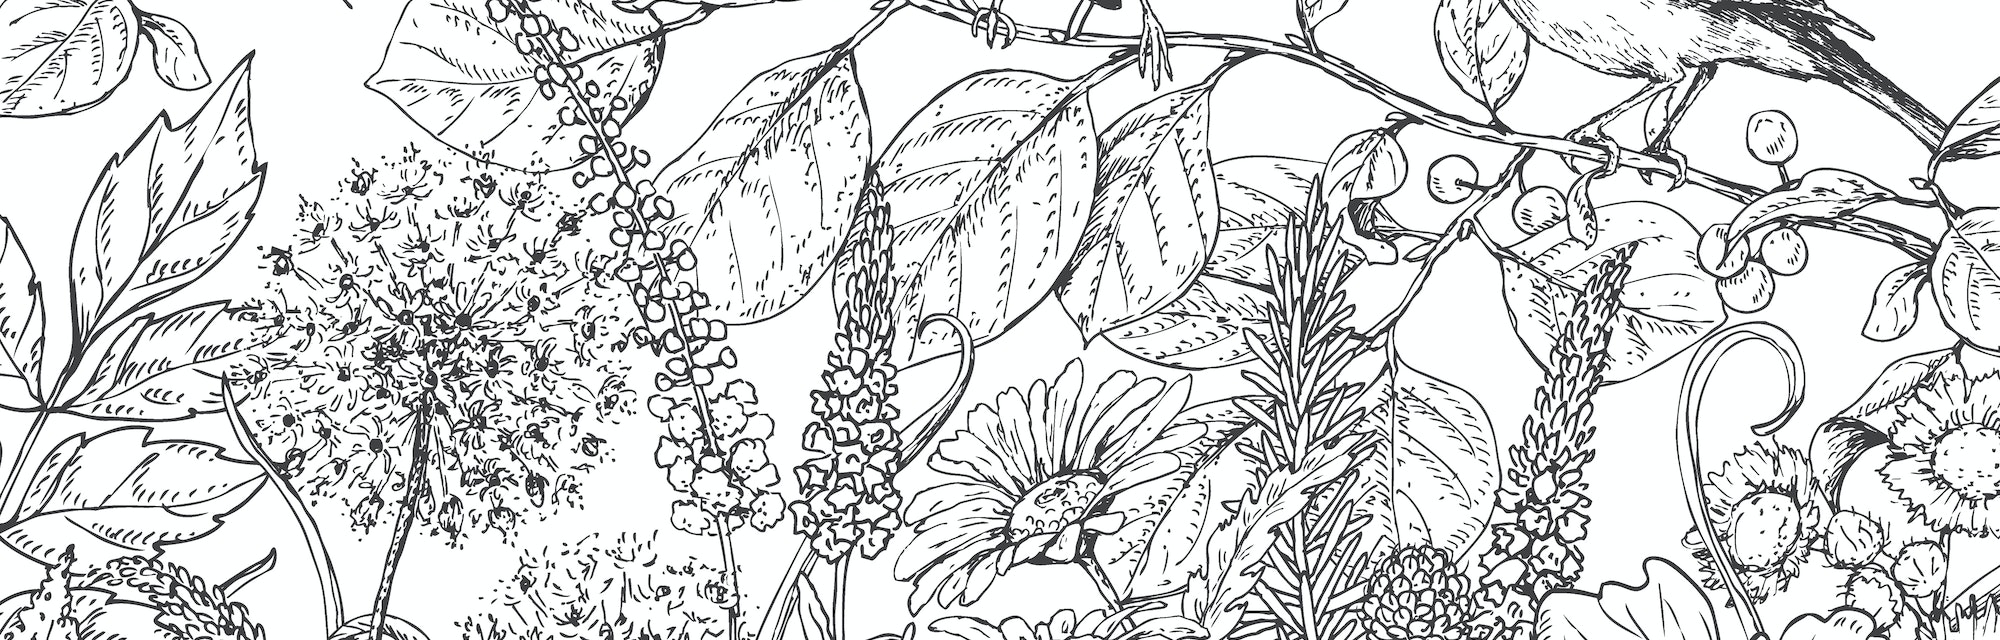 Hand drawn floral elements. Black and white flowers, plants, butterflies and two sitting songbirds on branch. Monochrome vector sketch.